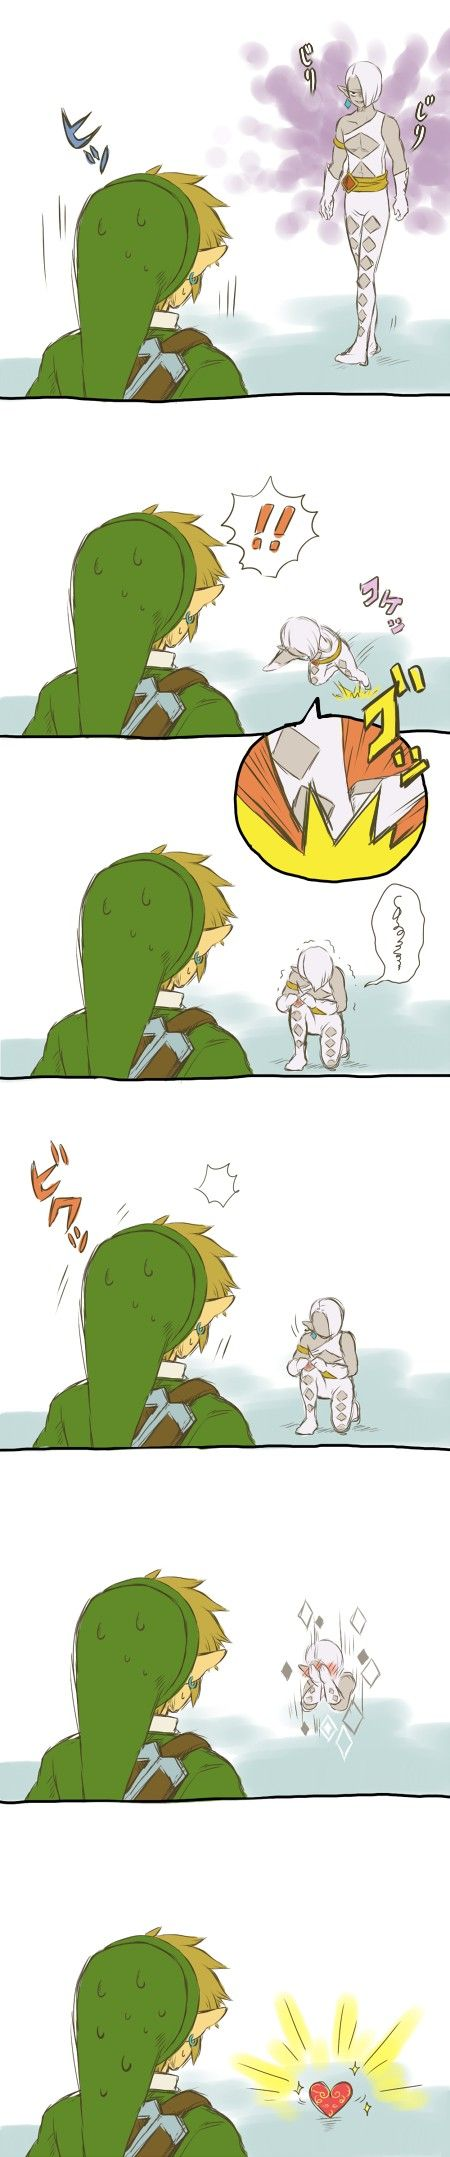 Get ready for the amazingly dangerous Lord Ghirahim!!! Oh wait, he's already dead?   I shouldn't be laughing at him but I am XD